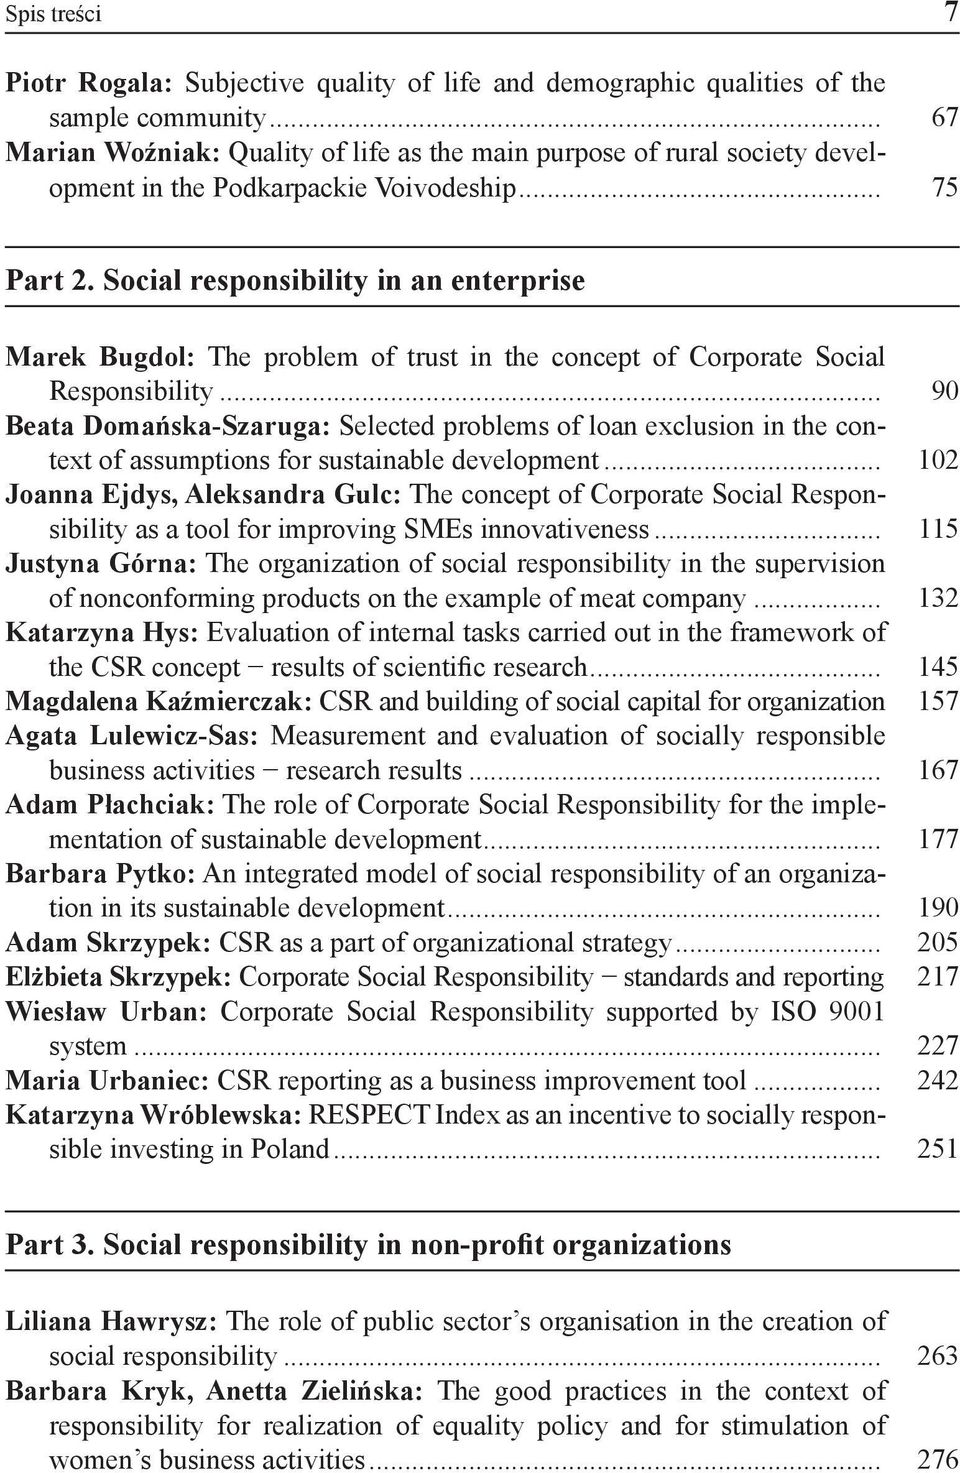 Social responsibility in an enterprise Marek Bugdol: The problem of trust in the concept of Corporate Social Responsibility.